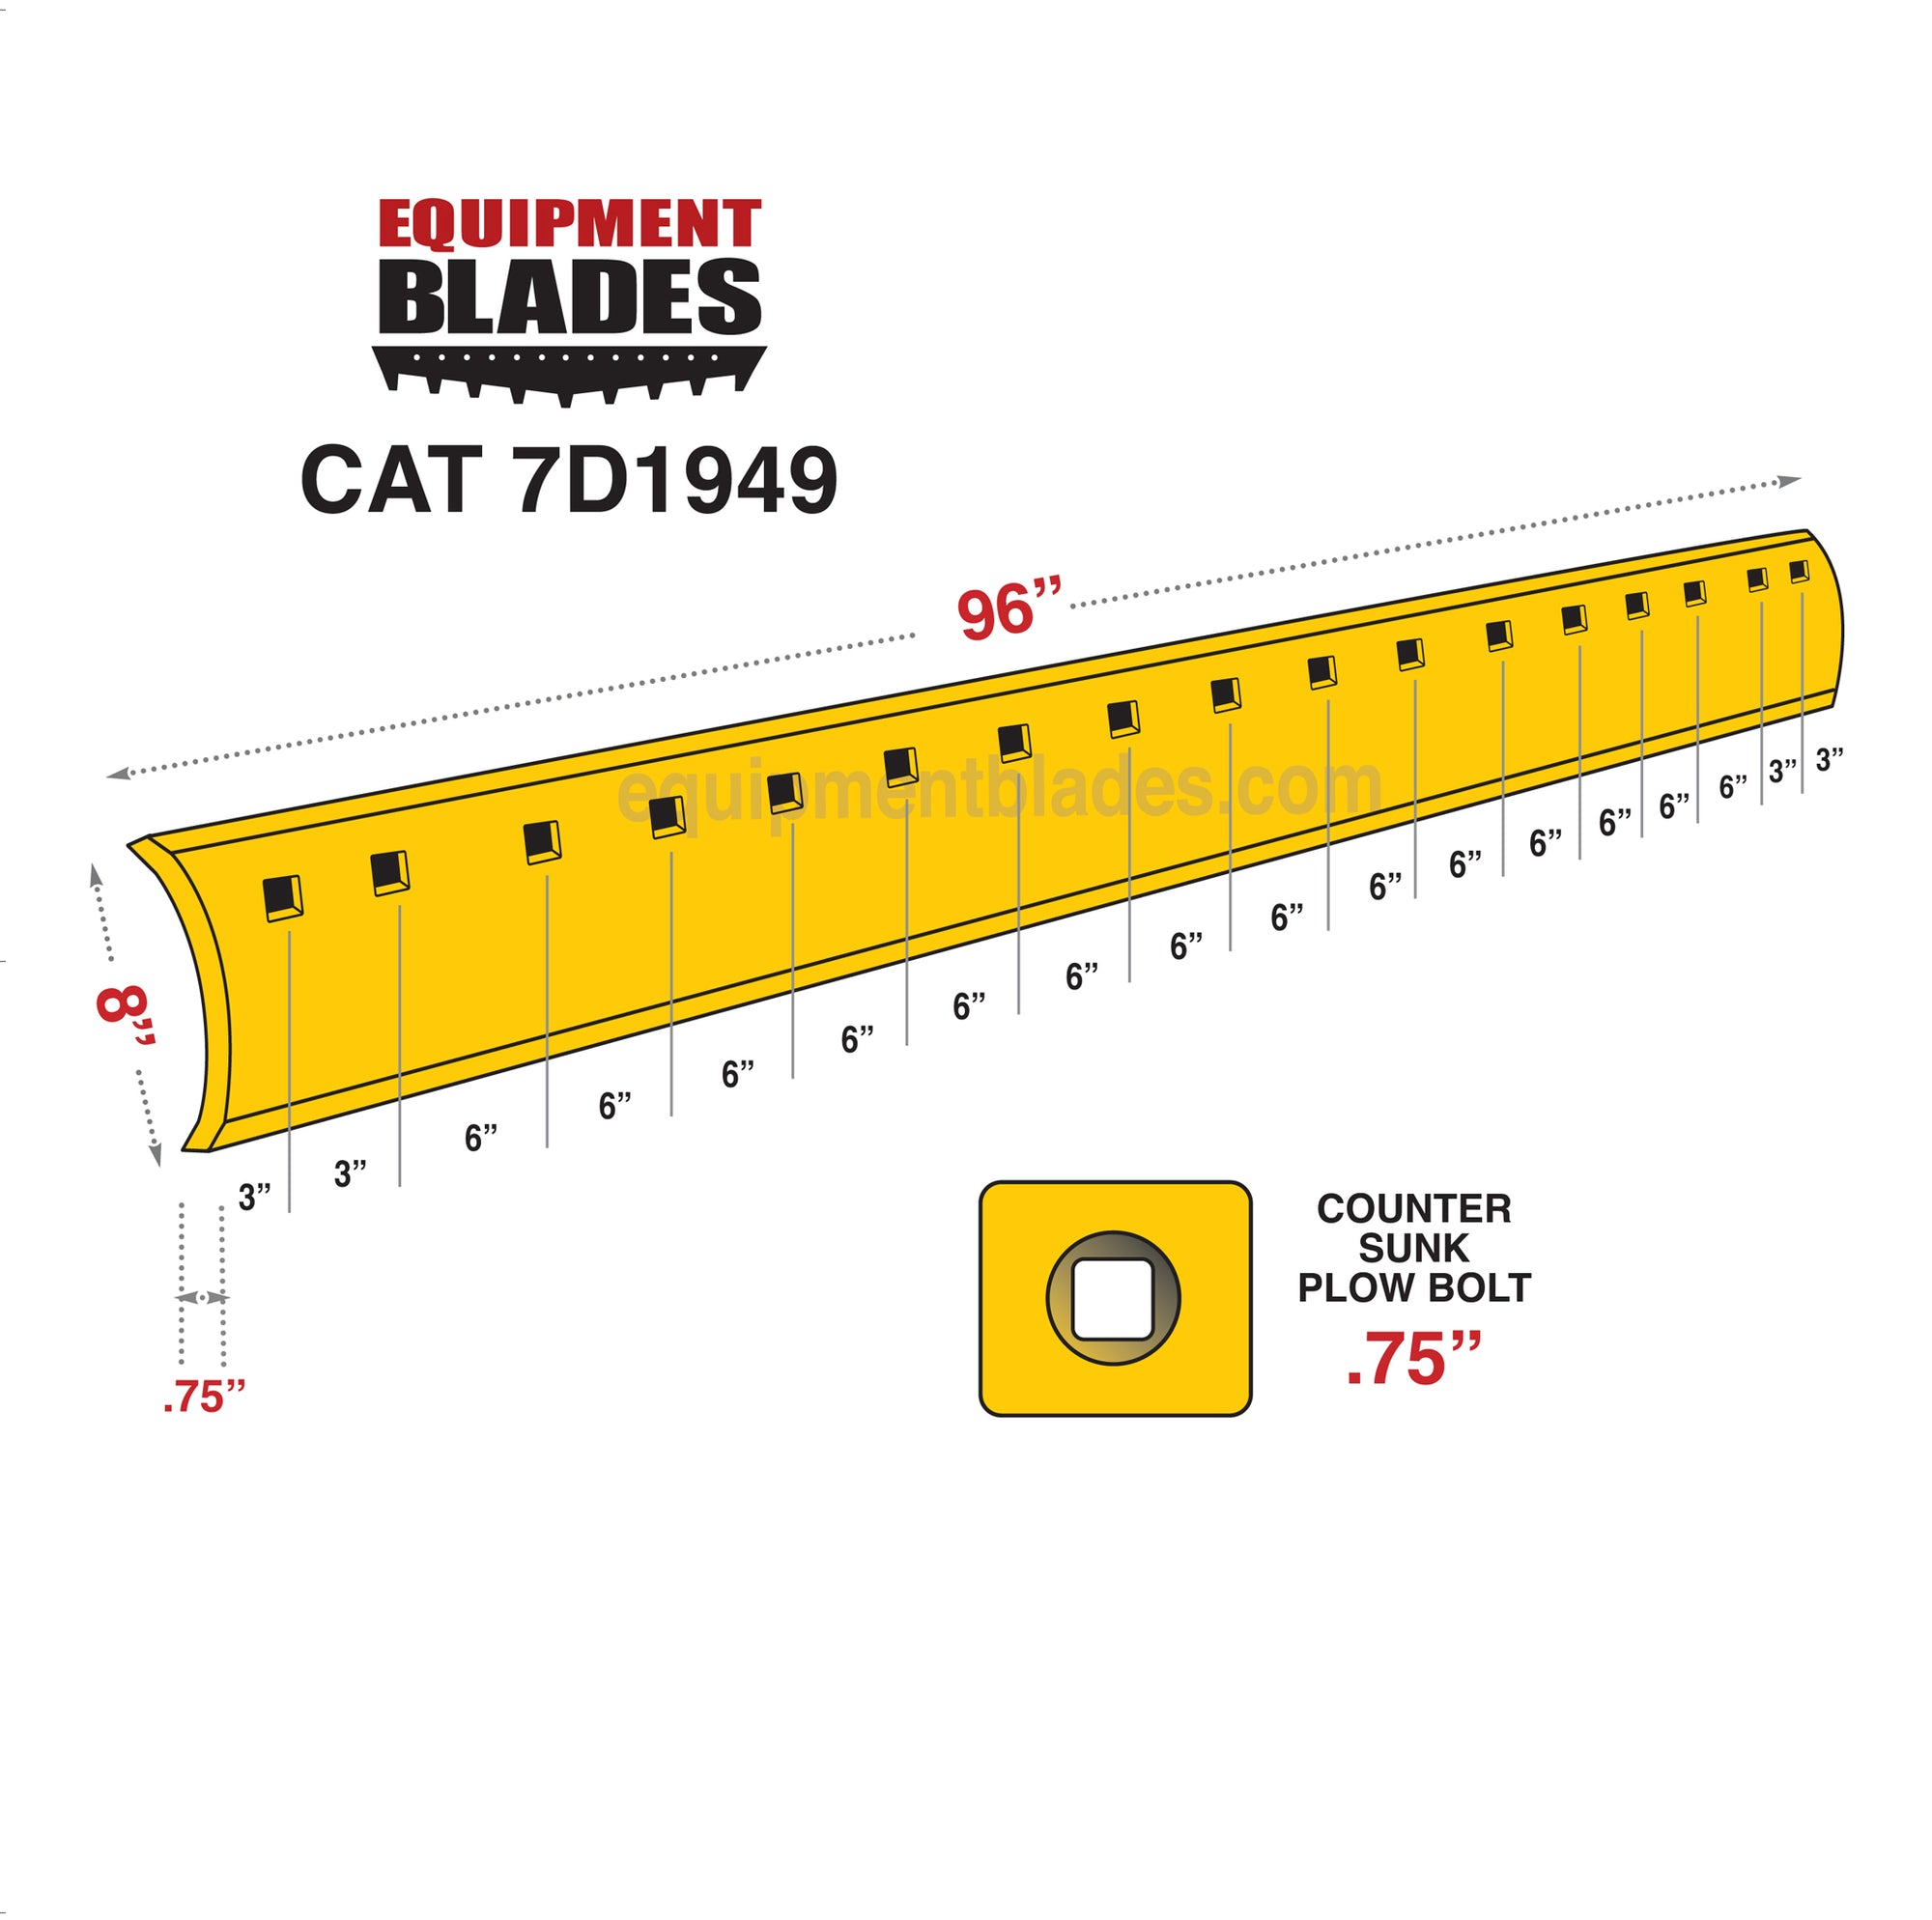 CAT 7D1949-Grader Blades-Equipment Blades Inc-Equipment Blades Inc